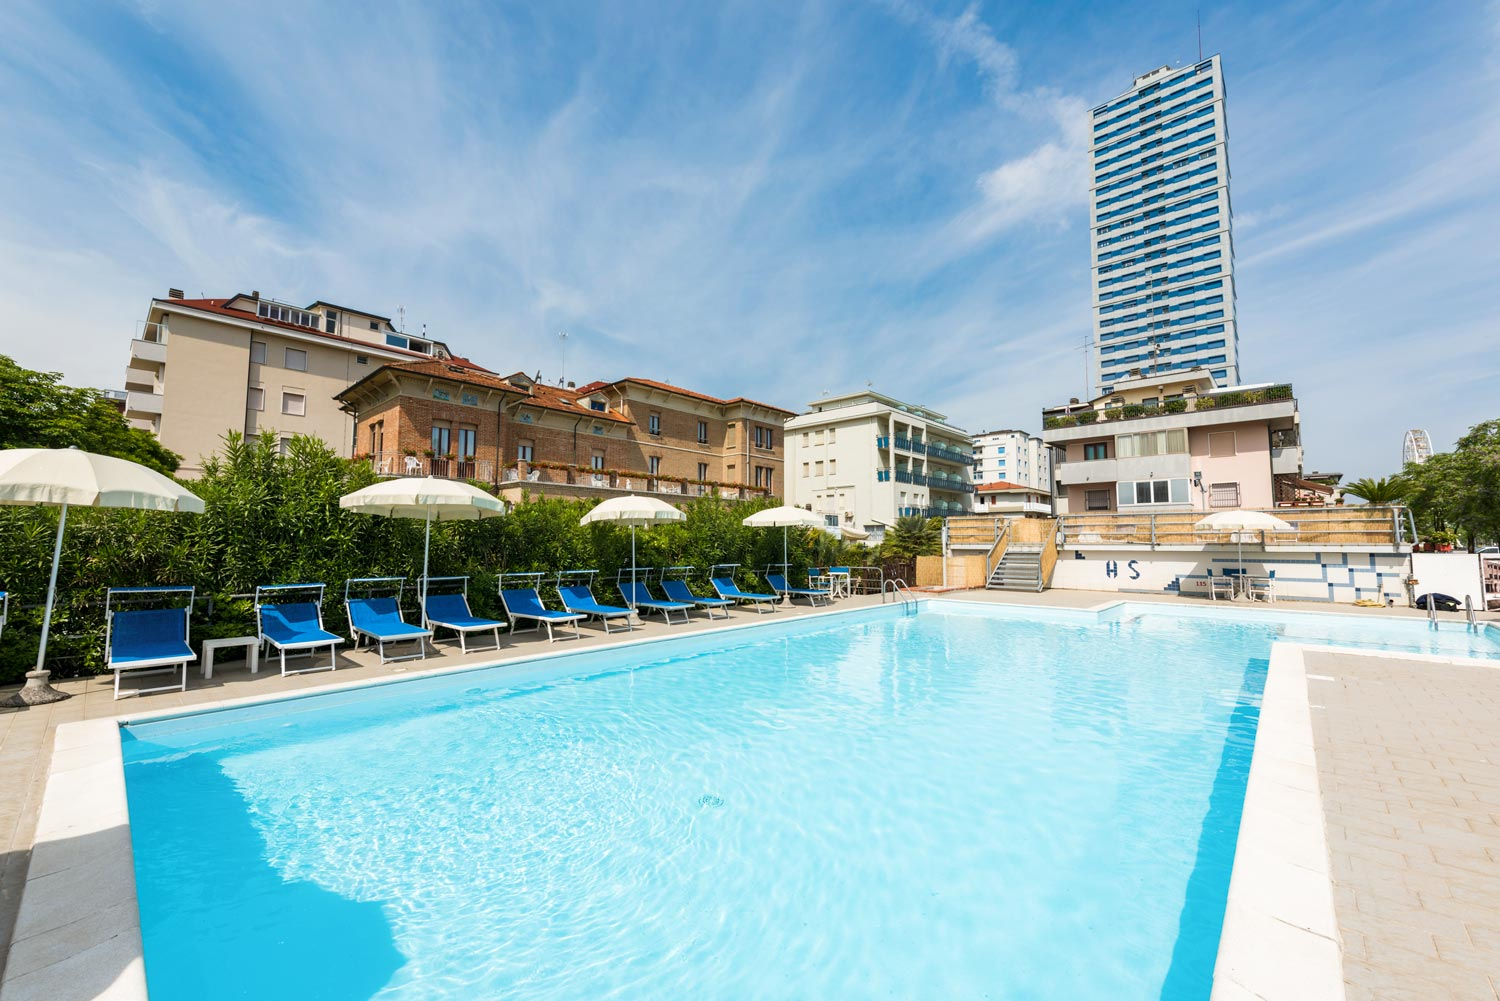 3-star Cesenatico seaside Hotel with swimming pool | Hotel Stefania